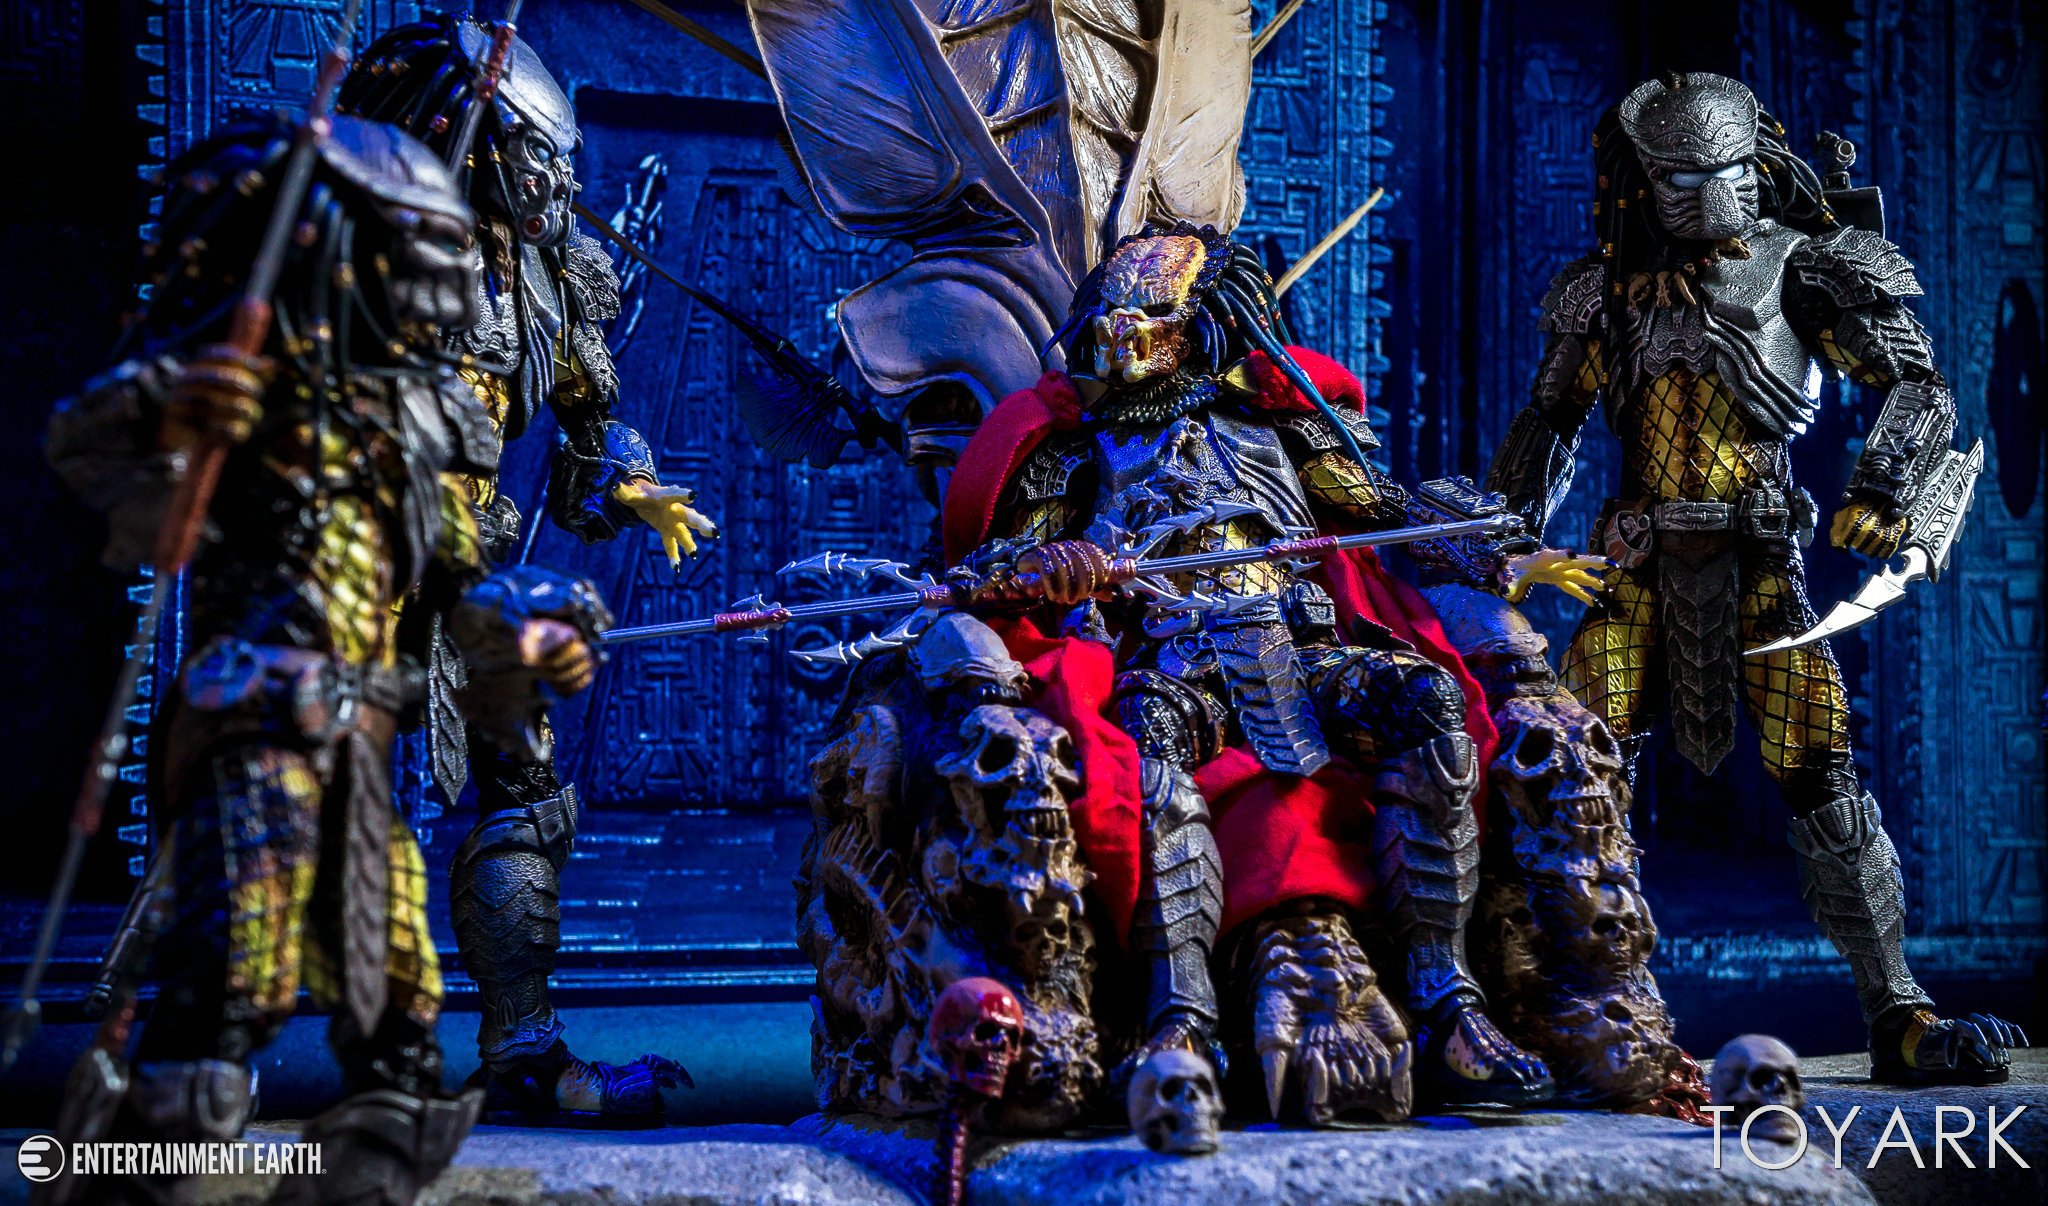 https://news.toyark.com/wp-content/uploads/sites/4/2018/05/NECA-Predator-Throne-037.jpg